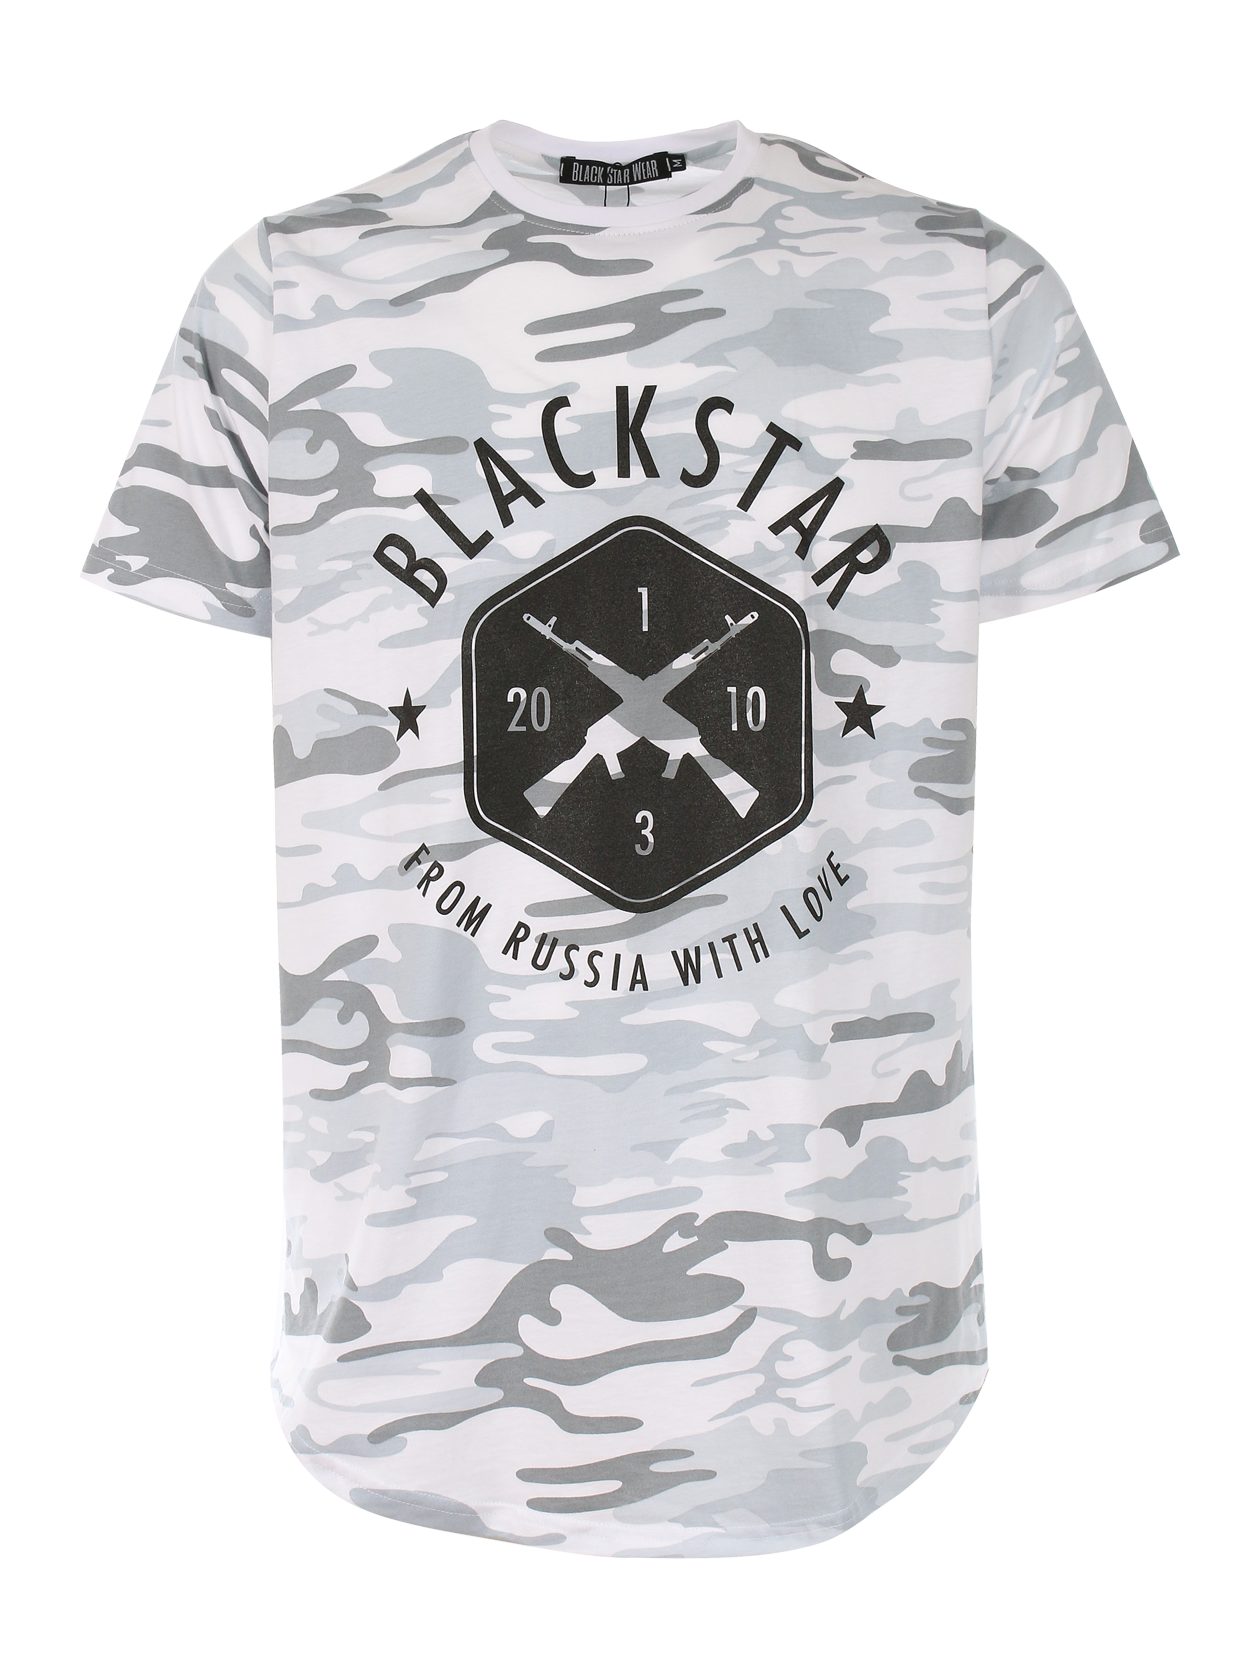 Mens t-shirt BLACK + STAR CAMOT-shirts and Jerseys<br>Mens t-shirt by Black Star Wear. Round cut, 100% cotton, o-neck. Big print with crossed rifles and Blackstar - from Russia with love lettering. These t-shirt is made of soft-touch natural cotton and feels like its been your favourite for years. Avaliable in white and khaki camouflage.<br><br>size: L<br>color: White<br>gender: male